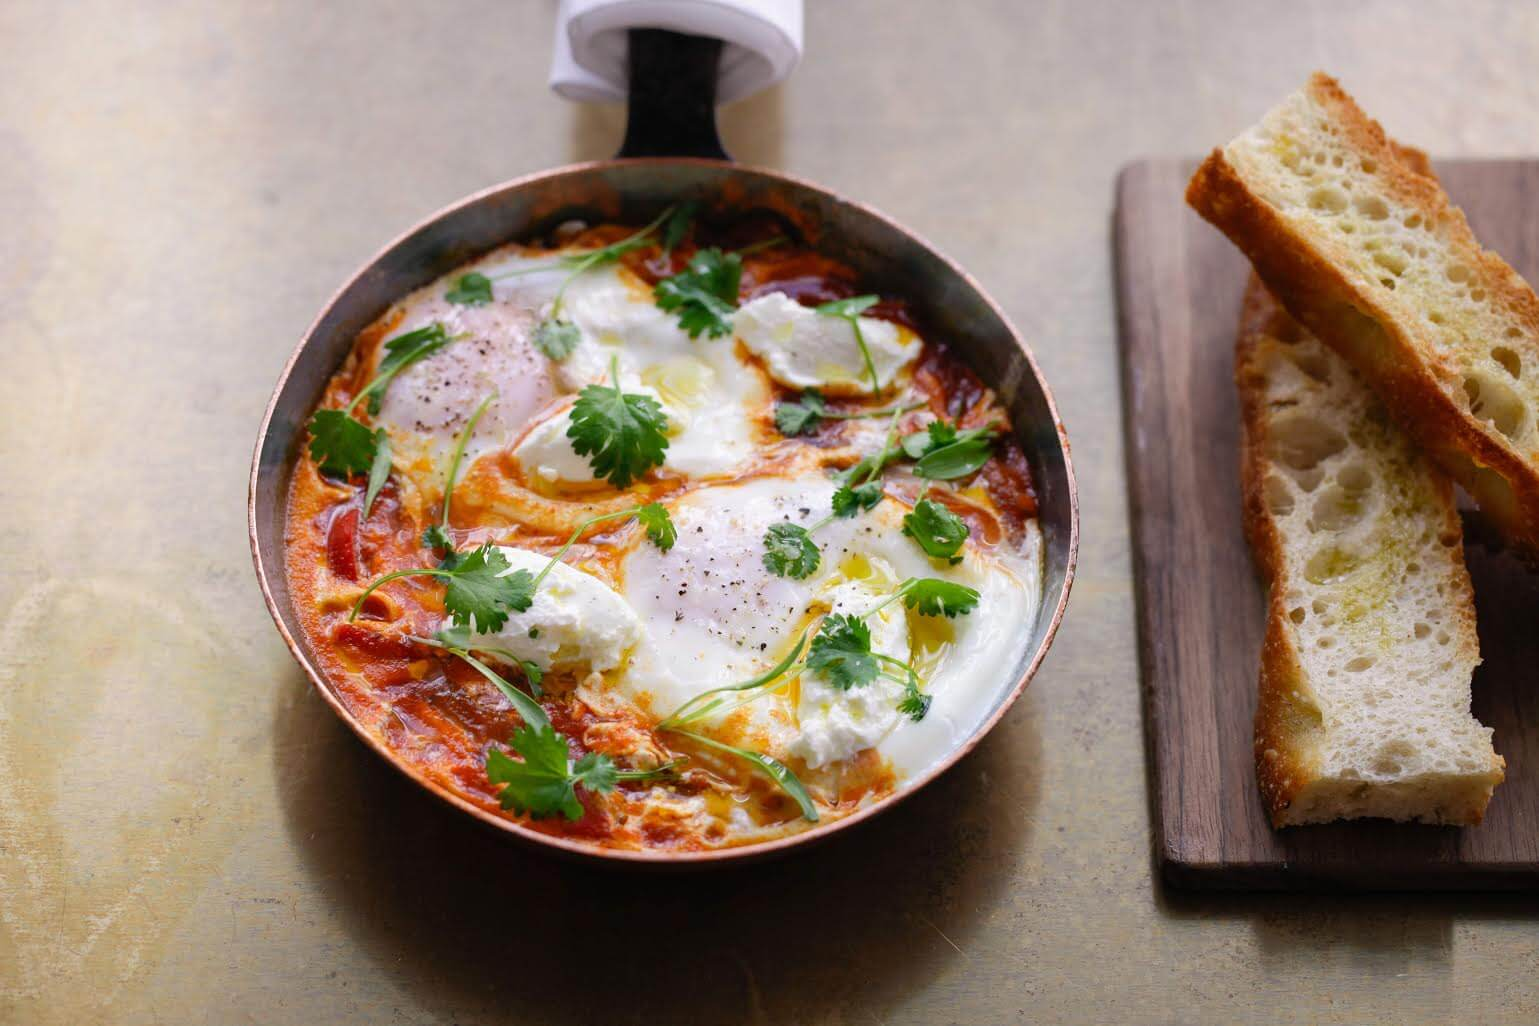 best shakshuka in London, shakshuka london, About Time You Tried: London's Best Shakshuka, best breakfast in london, ottolenghi islington, shakshuka, baked eggs, yotam ottolenghi, new restaurants london, best brunch in london, best breakfast in london, brunch london, breakfast london, where to brunch in london, london breakfast